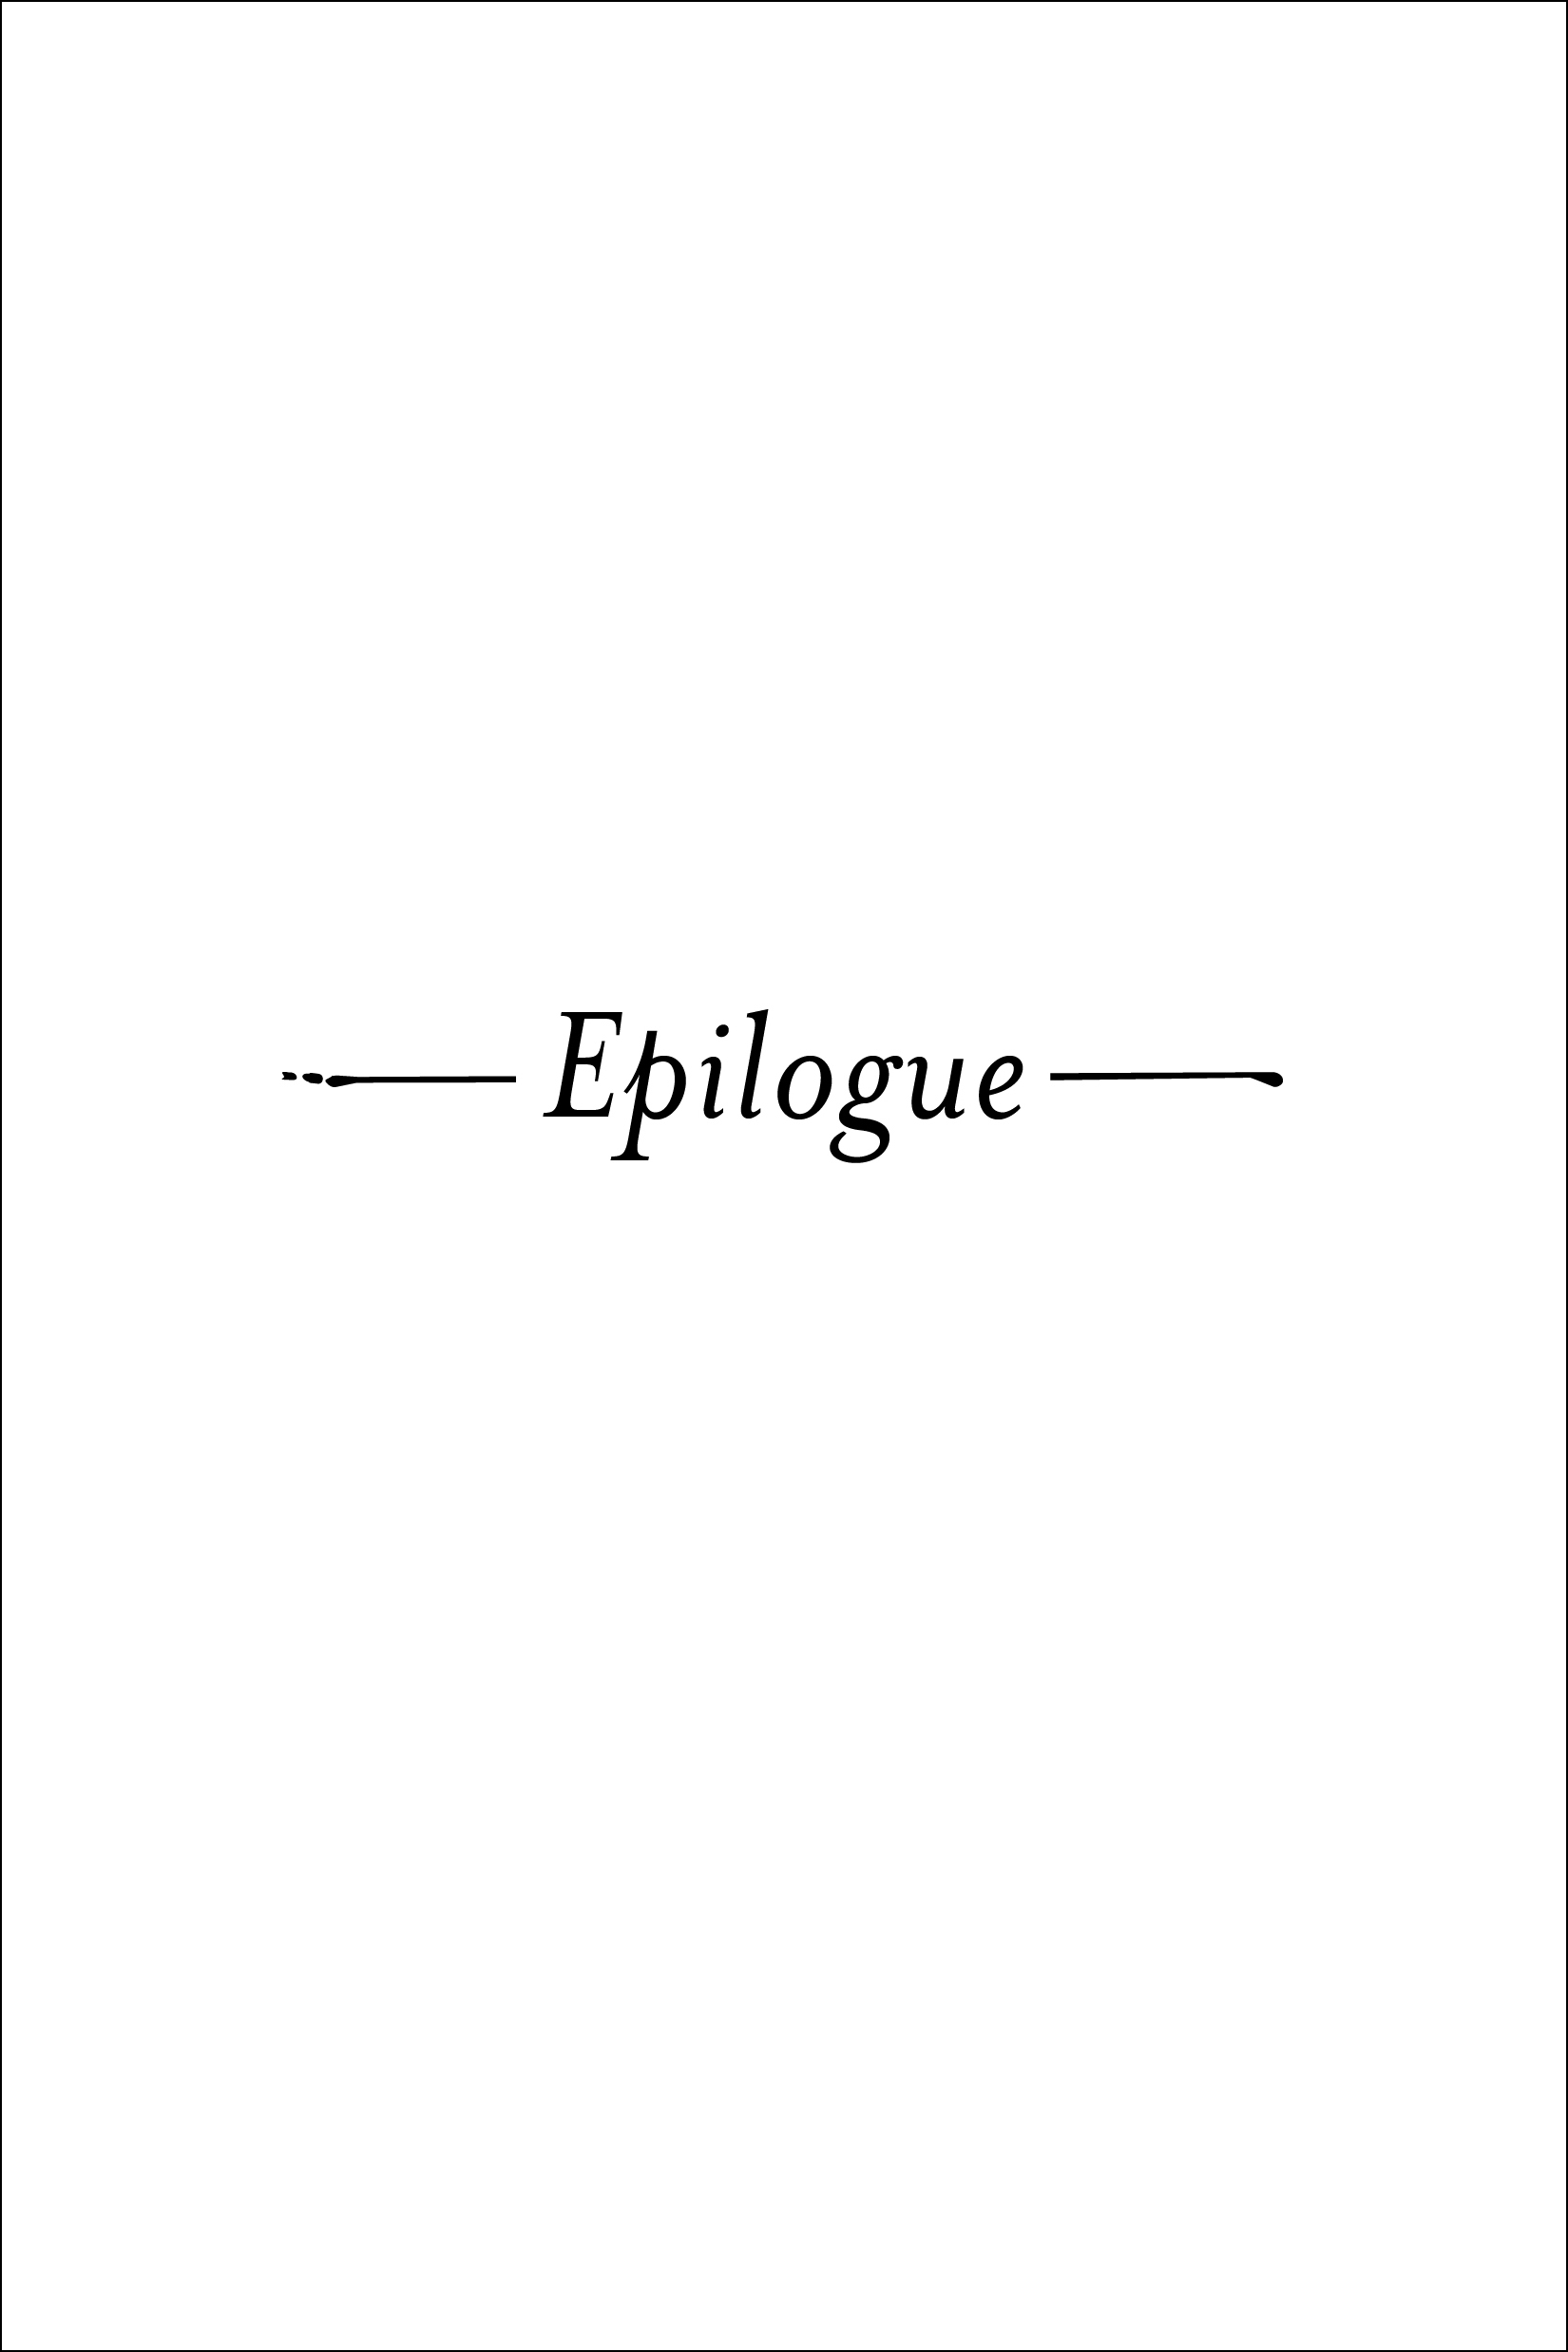 Epilogue opener for WILLOW